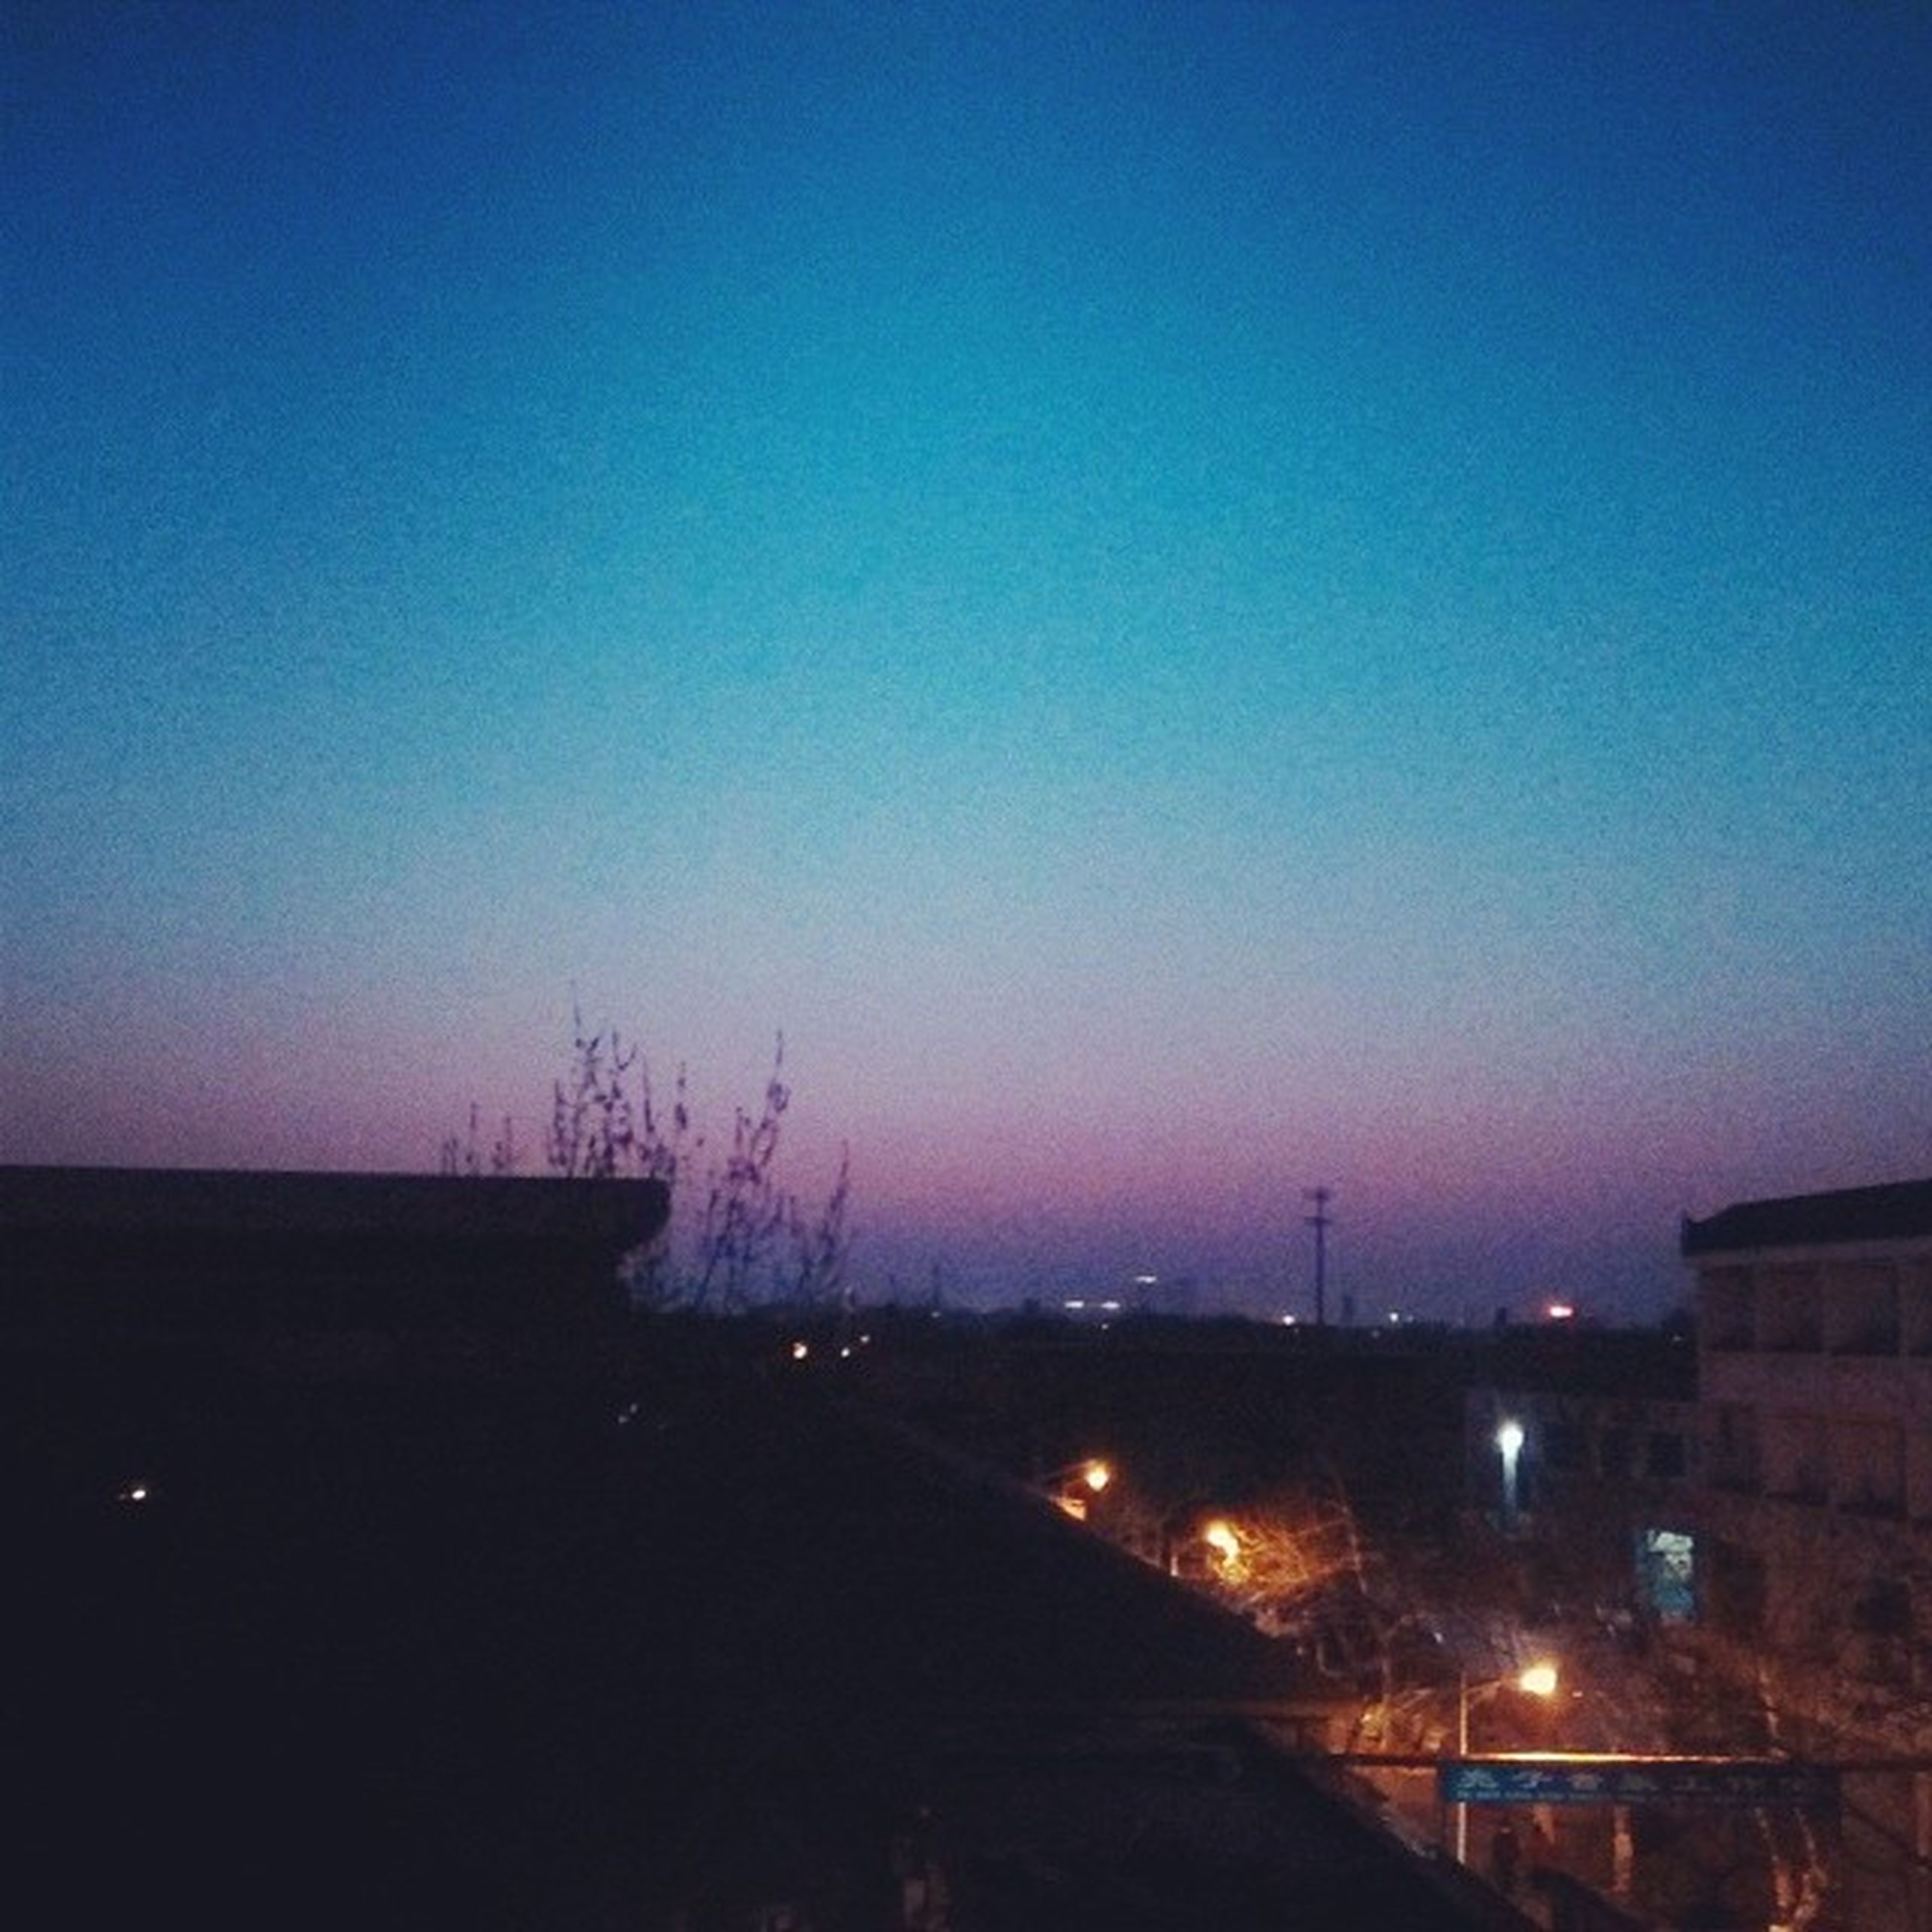 copy space, clear sky, illuminated, building exterior, built structure, architecture, night, dusk, blue, city, sunset, silhouette, landscape, cityscape, outdoors, dark, no people, nature, high angle view, sky